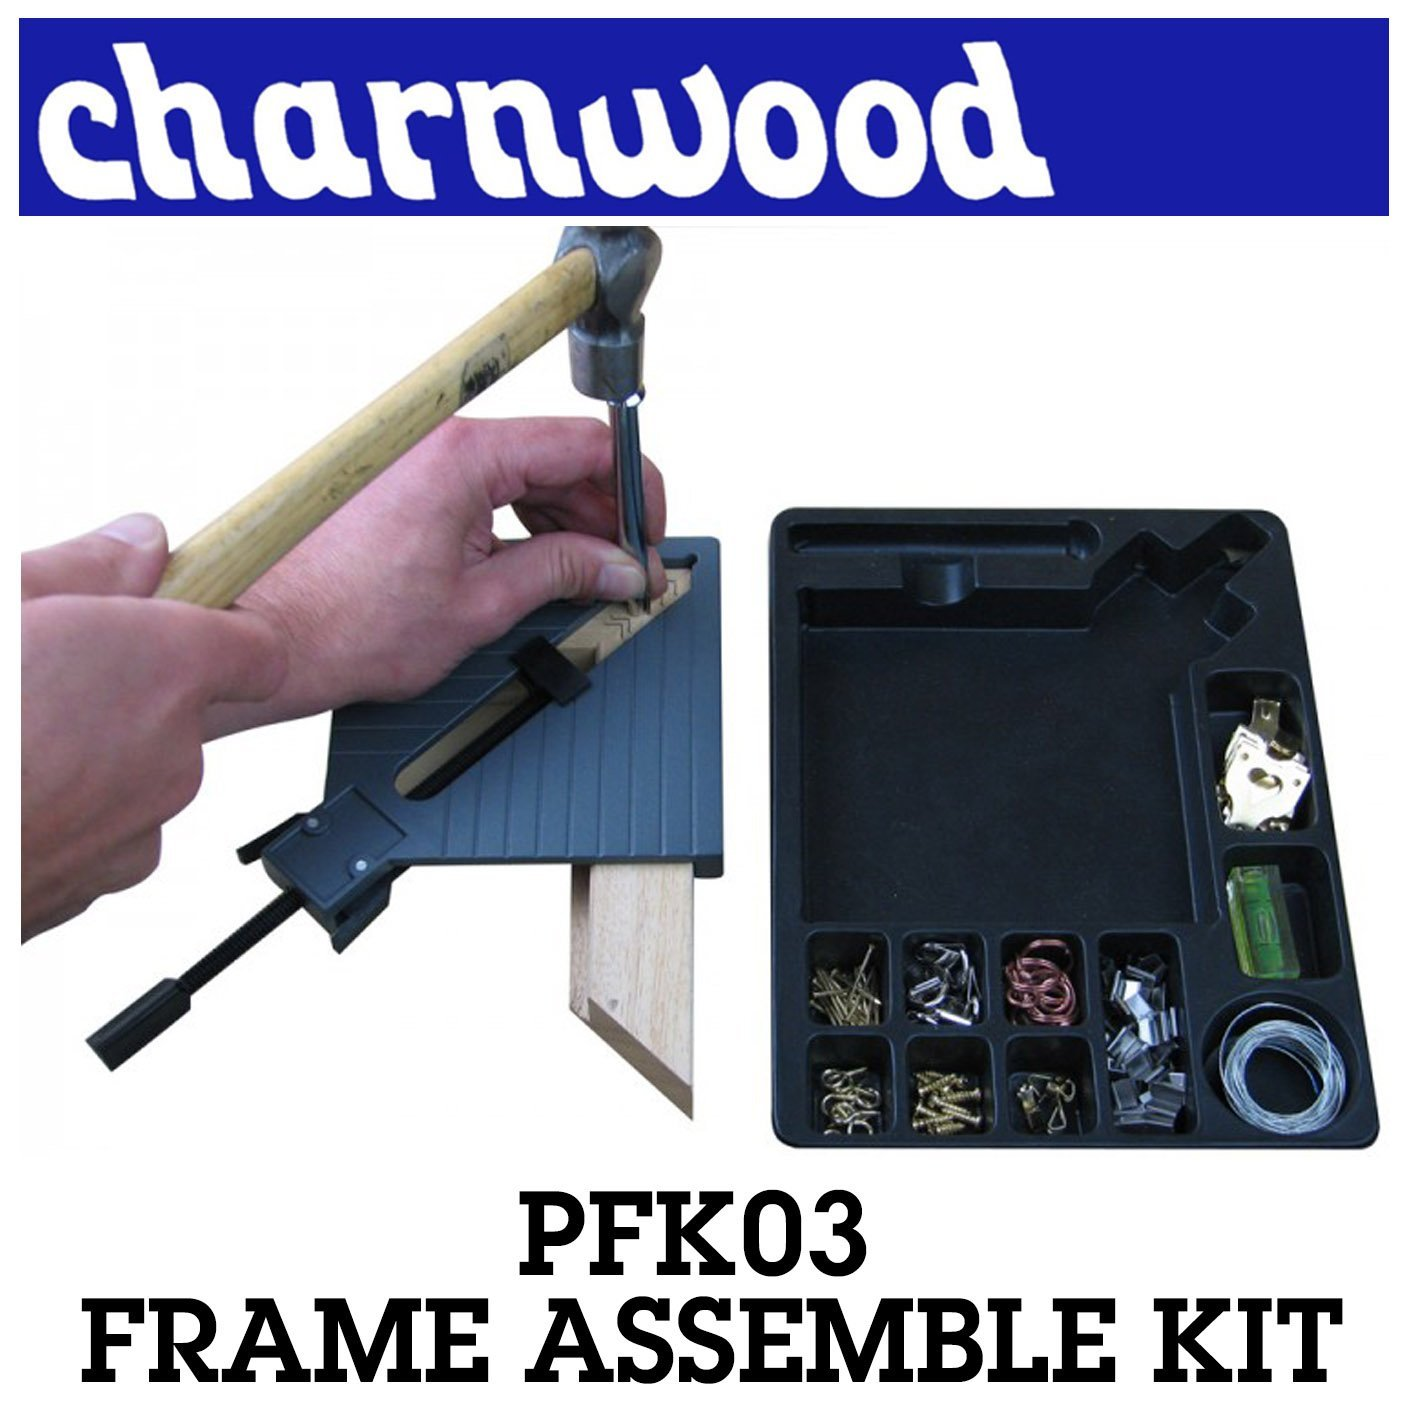 New Charnwood PFK03 Kit No3 Picture Framing